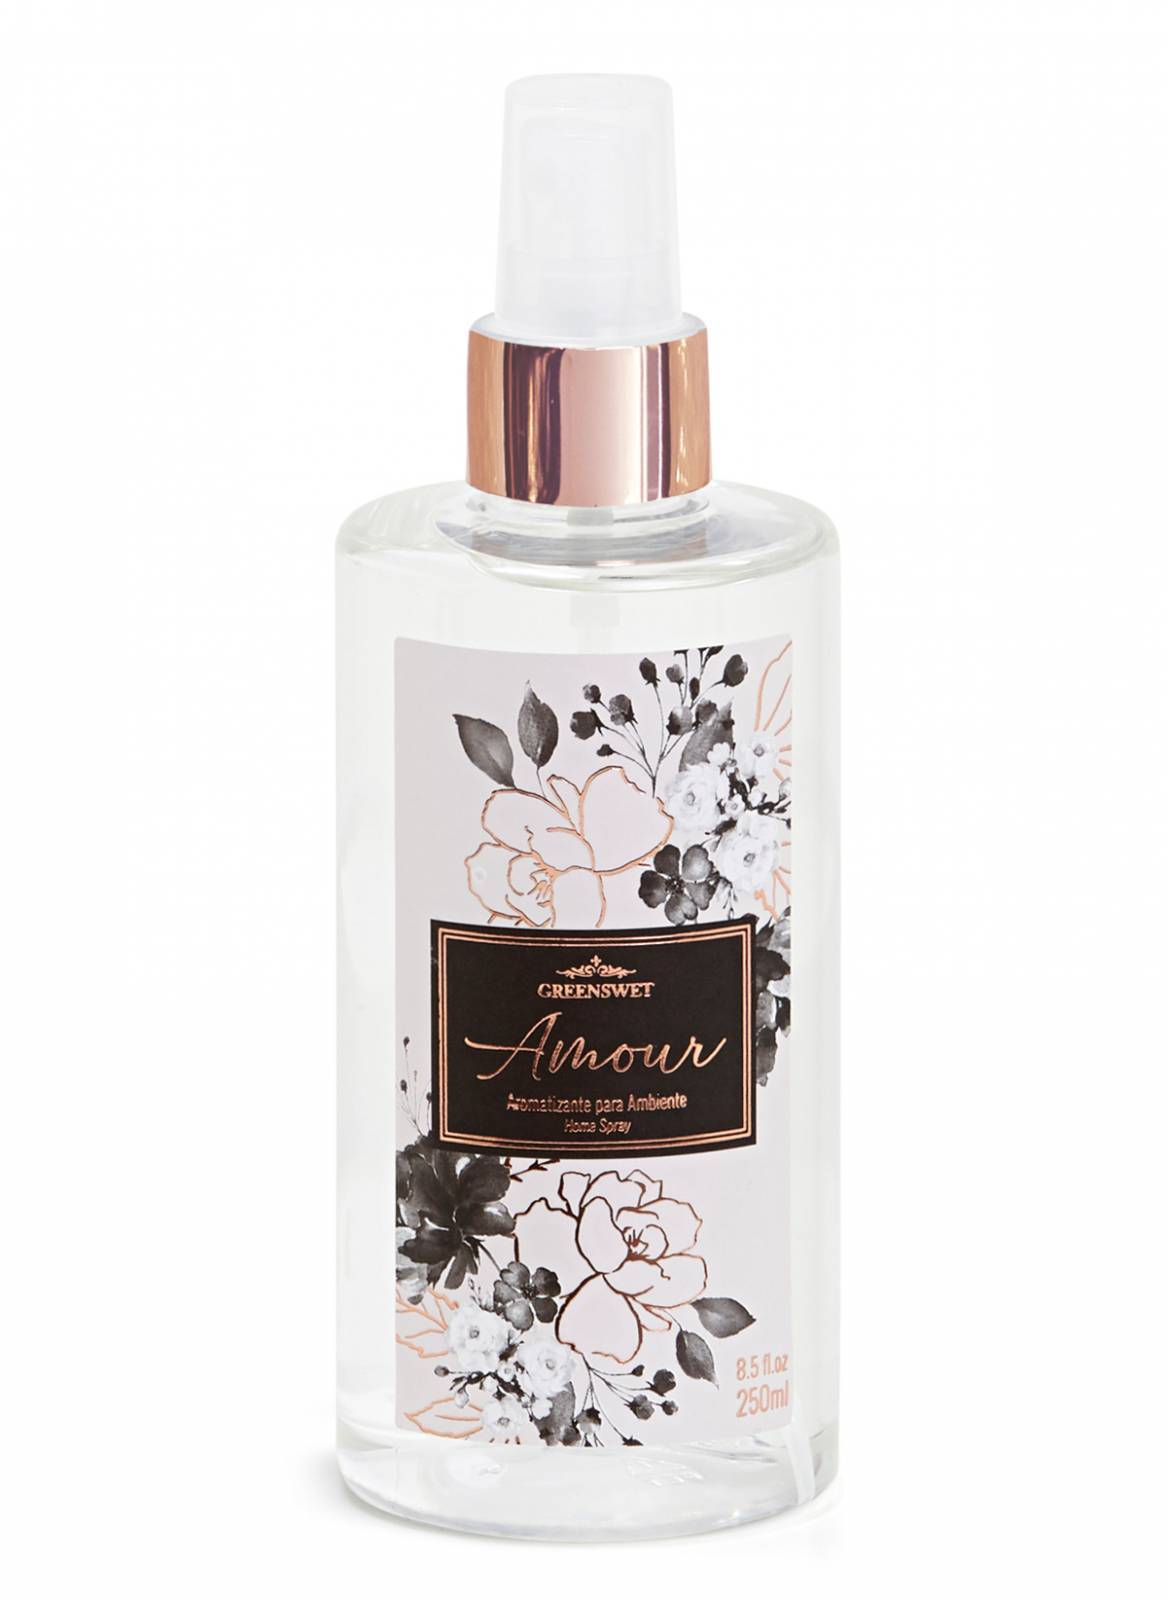 Home Spray 250ml Essência Amour - Greenswet Aromatizantes